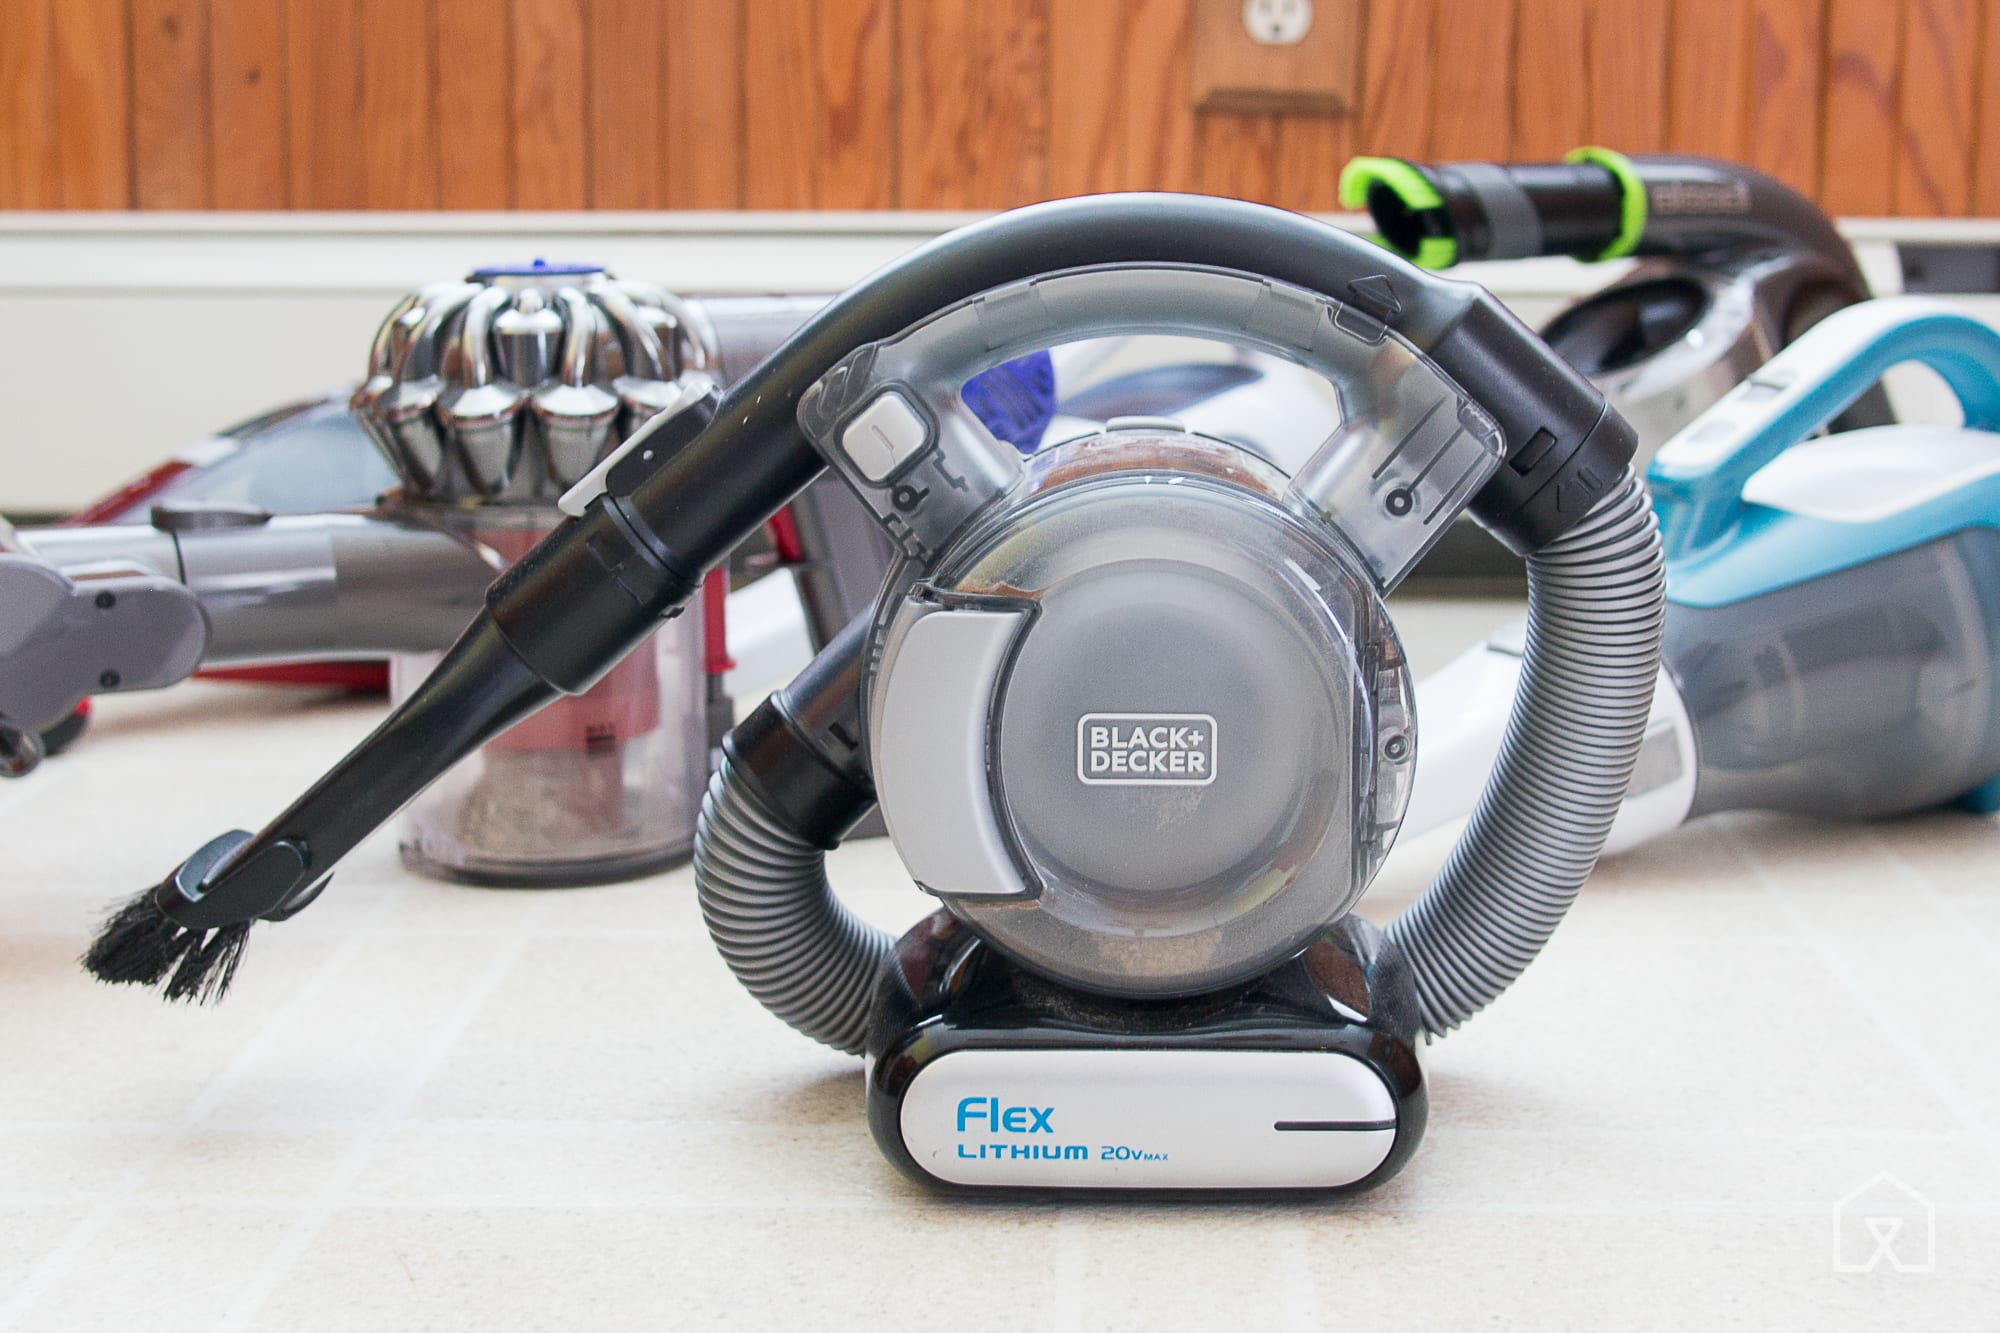 The Best Handheld Vacuum Engadget